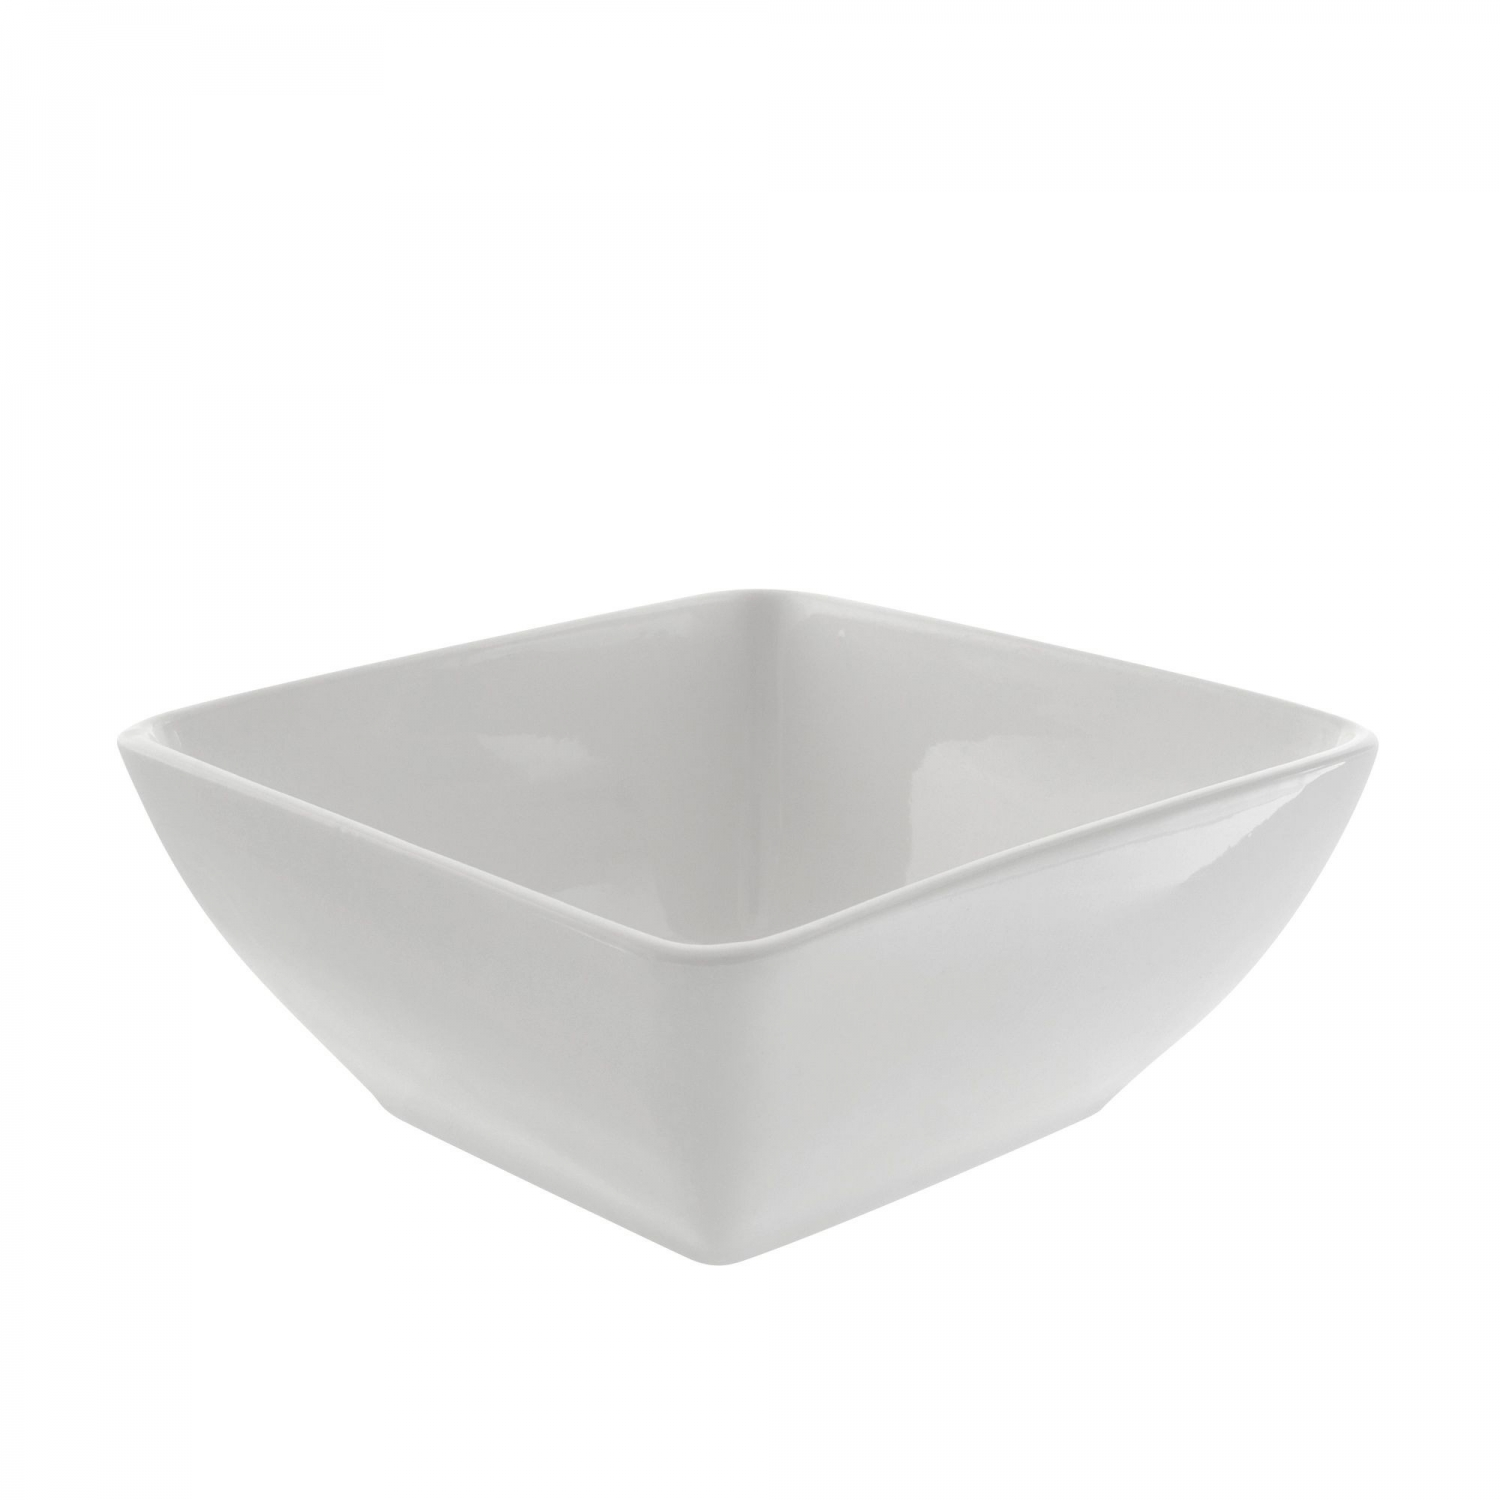 10 Strawberry Street WTR-7SQBWL Whittier Square Rimless Bowl 24 oz.